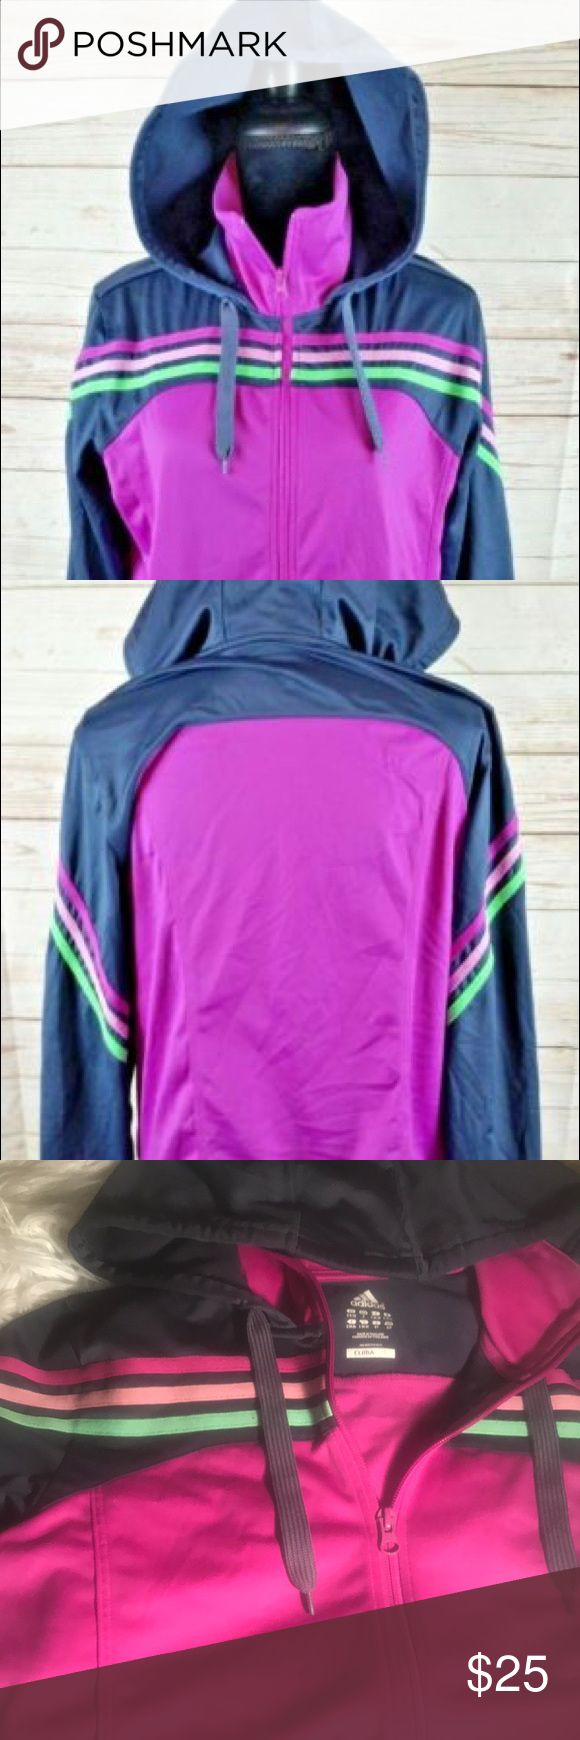 Adidas Women's Track Jacket Adidas Women's Small Hoodie Track Jacket Purple Gray Neon Green ClimaLite. adidas Tops Sweatshirts & Hoodies